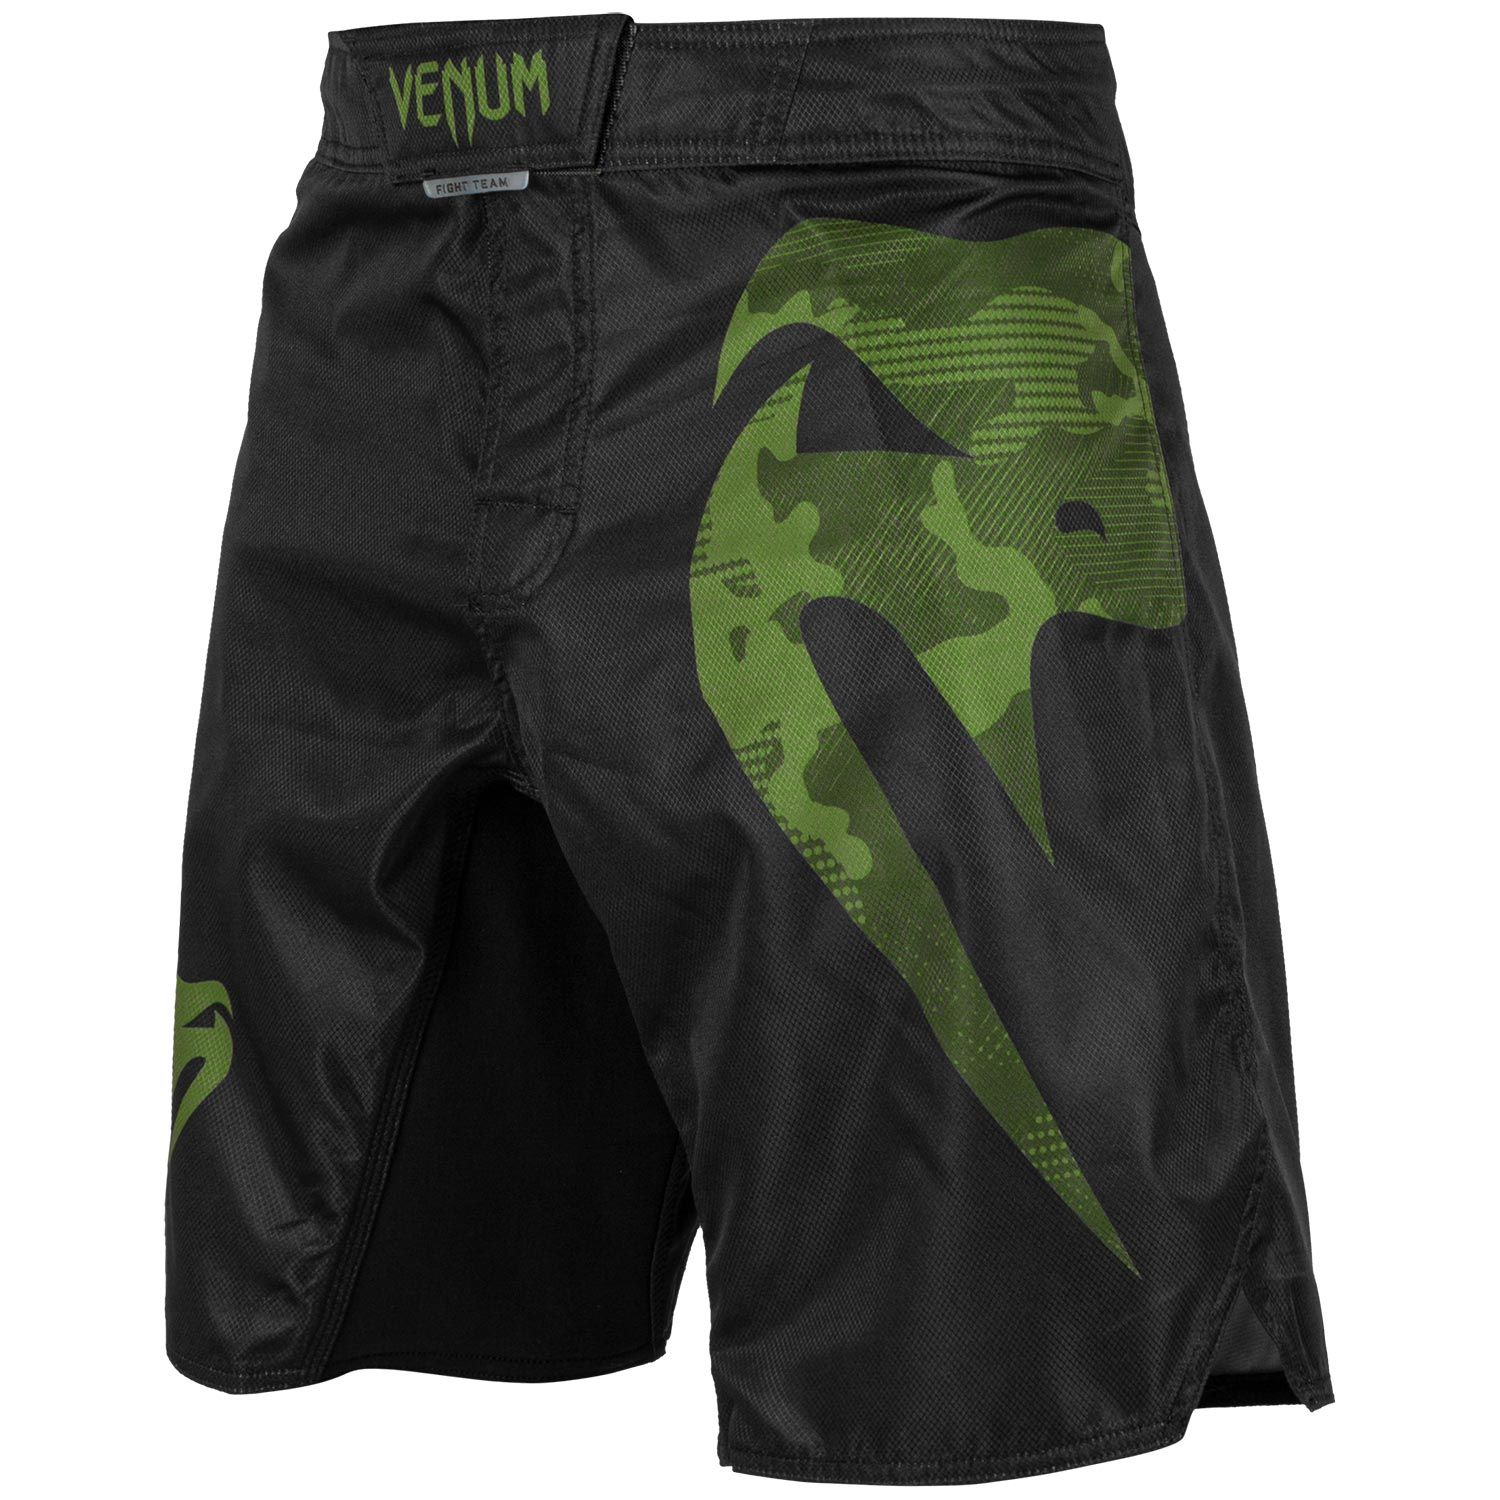 Fightshort Venum light 3.0 Noir - Kaki